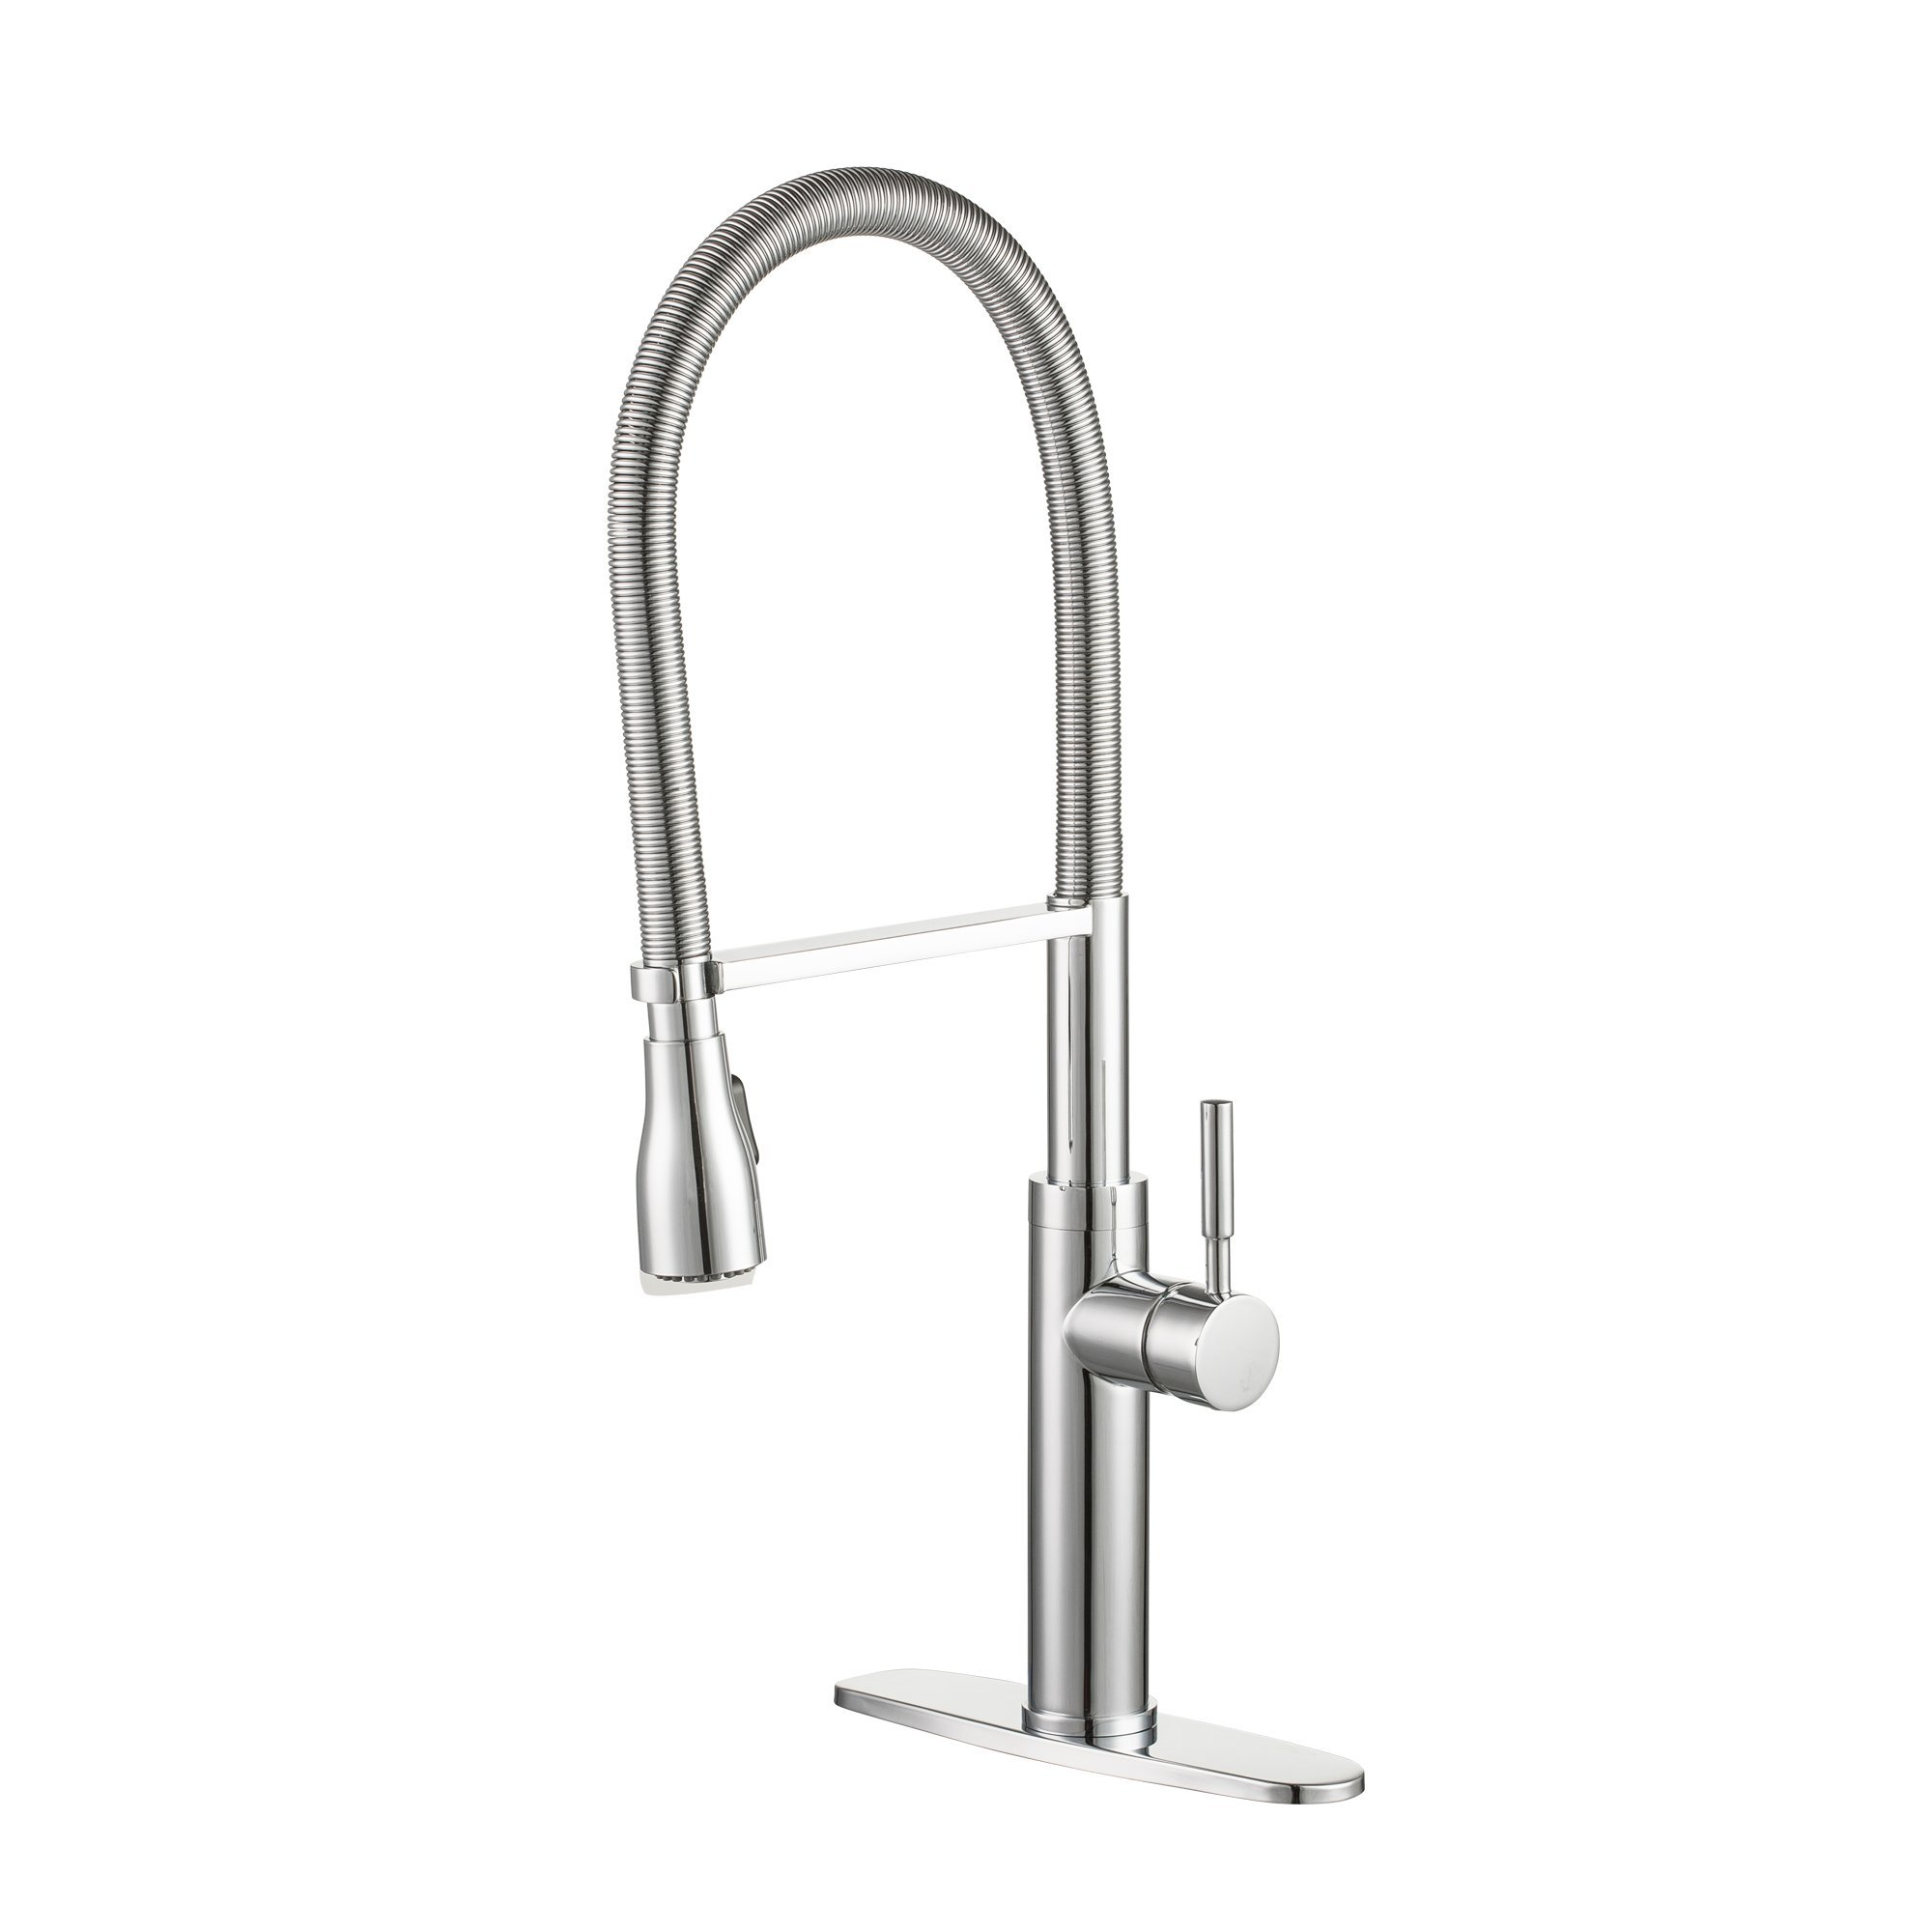 Enzo Rodi Modern Spring Commercial High-arc Lead-free Brass Pull-down Kitchen Sink Faucet with Pull-out Sprayer, Chrome, ERF7356390CP-10